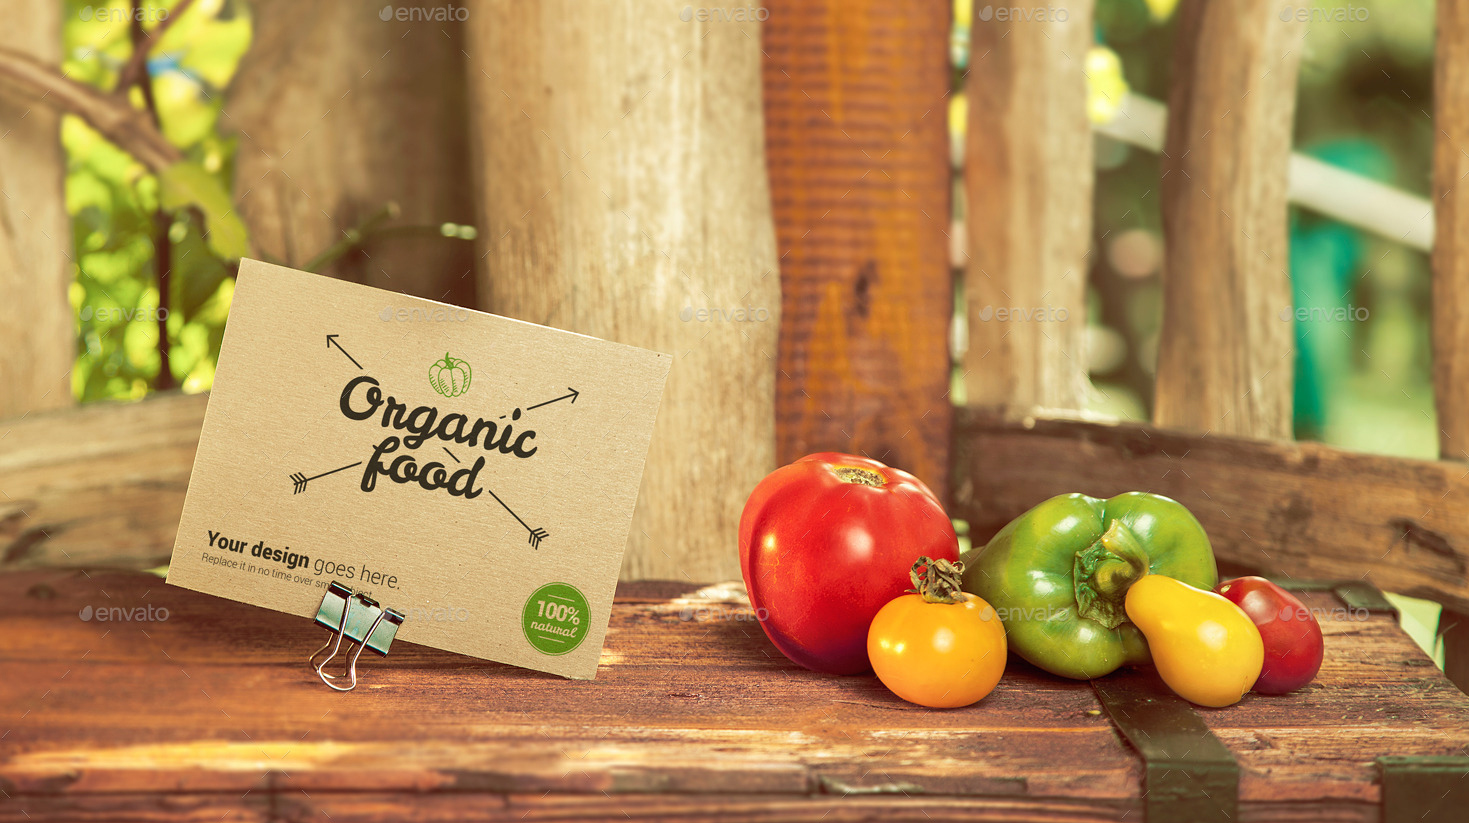 ​Kerala to launch 'Kerala Brand' organic vegetables in market soon